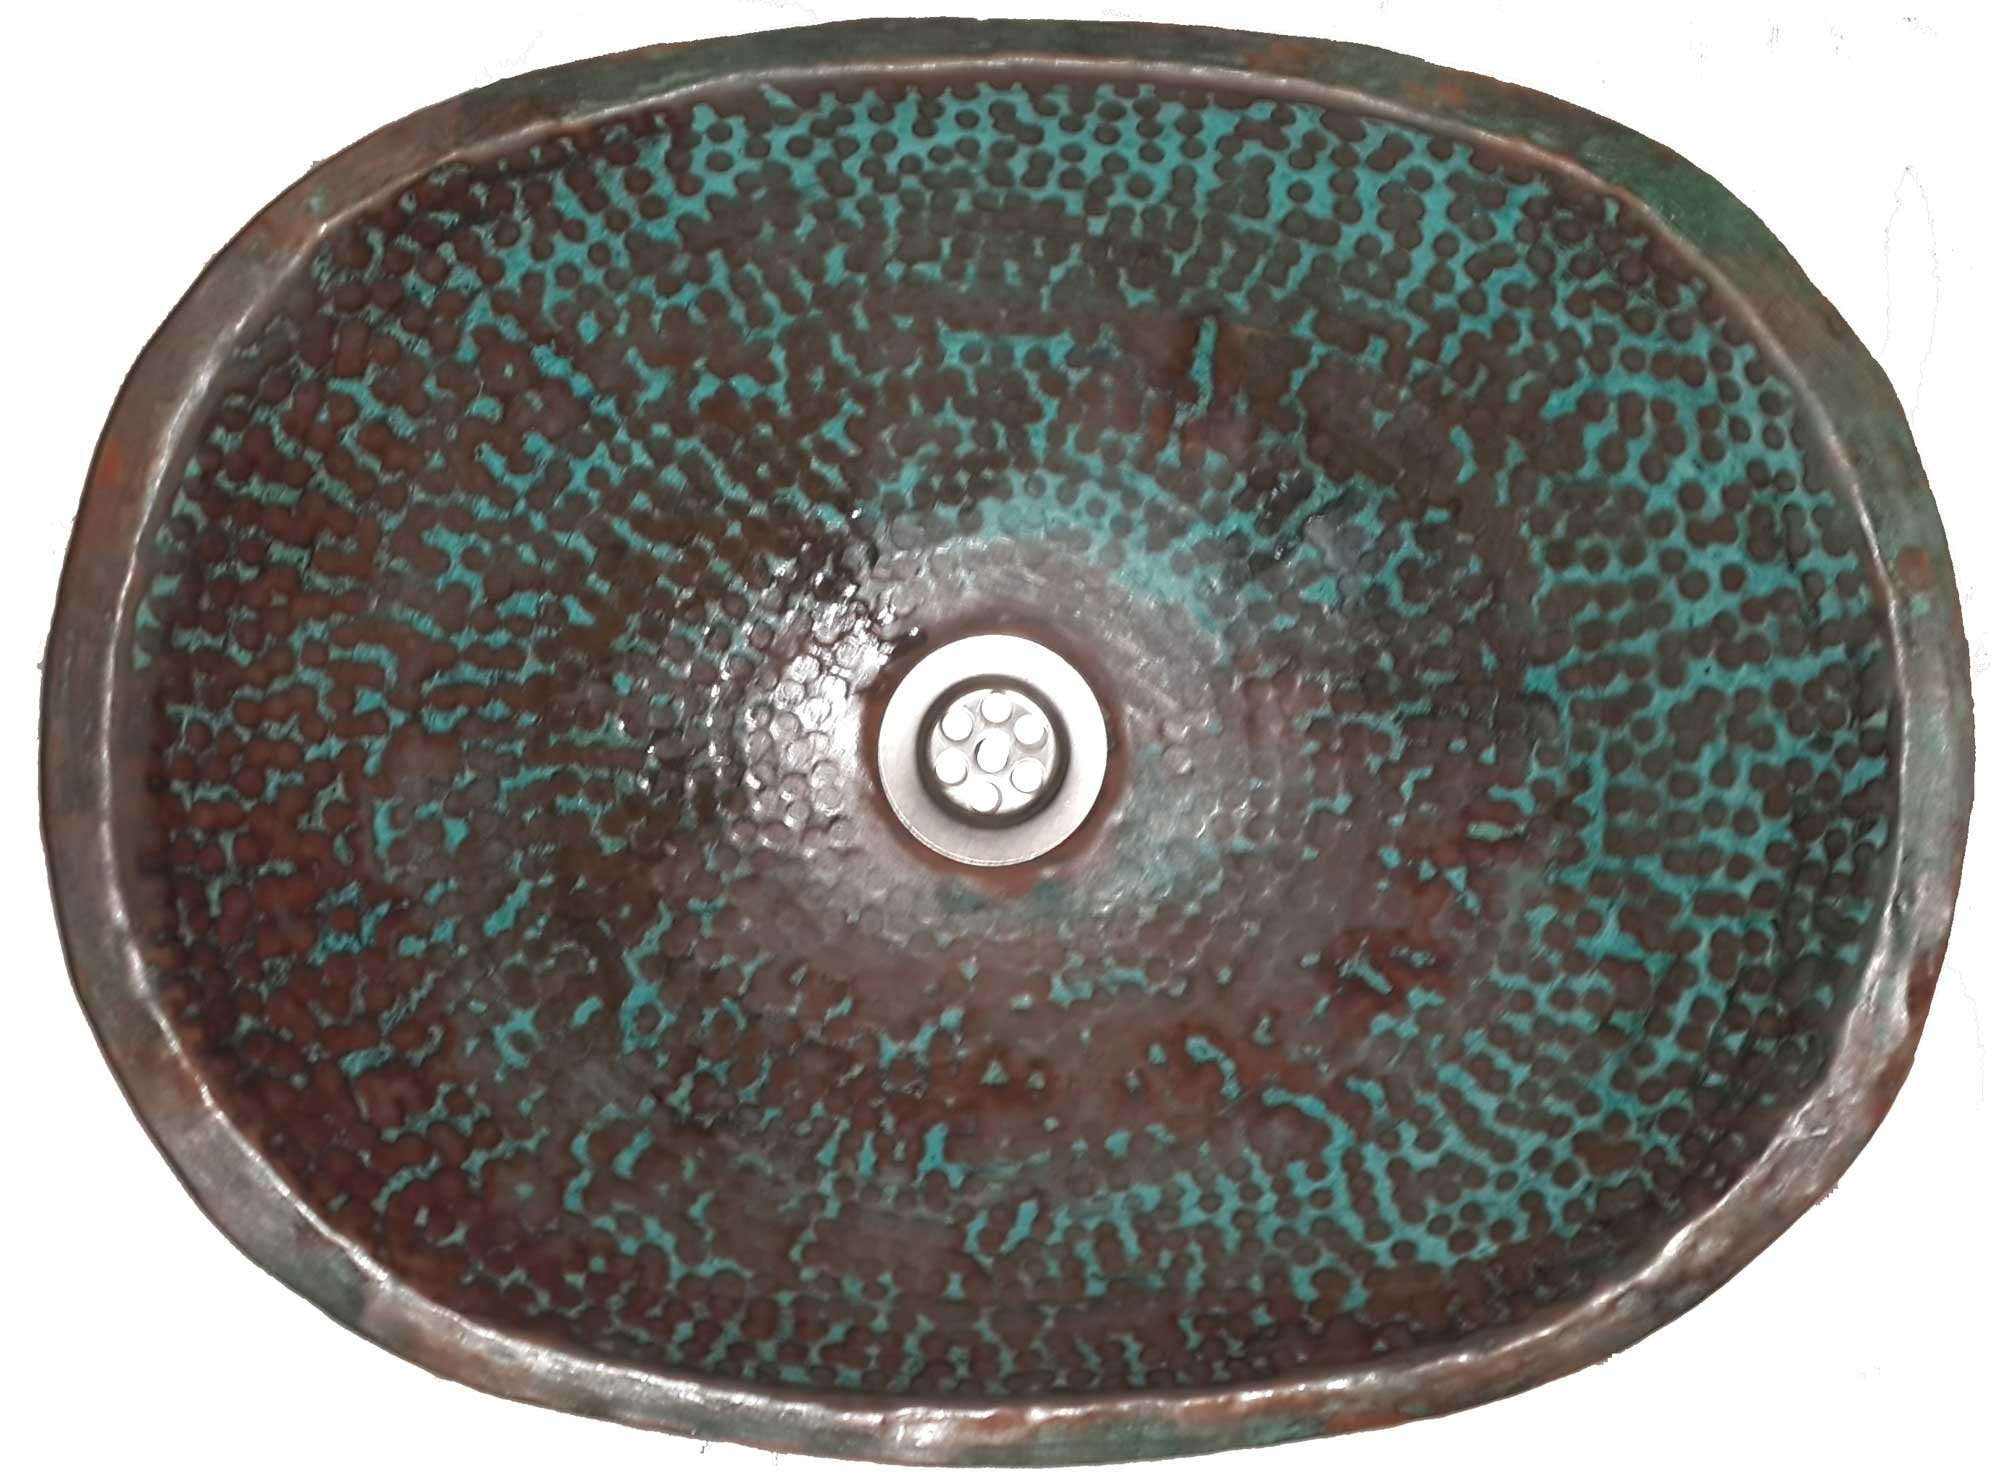 Egypt gift shops Oxidized Textured Copper Surface Oval Vessel Master Bathroom Sink Guest Washroom Lavatory